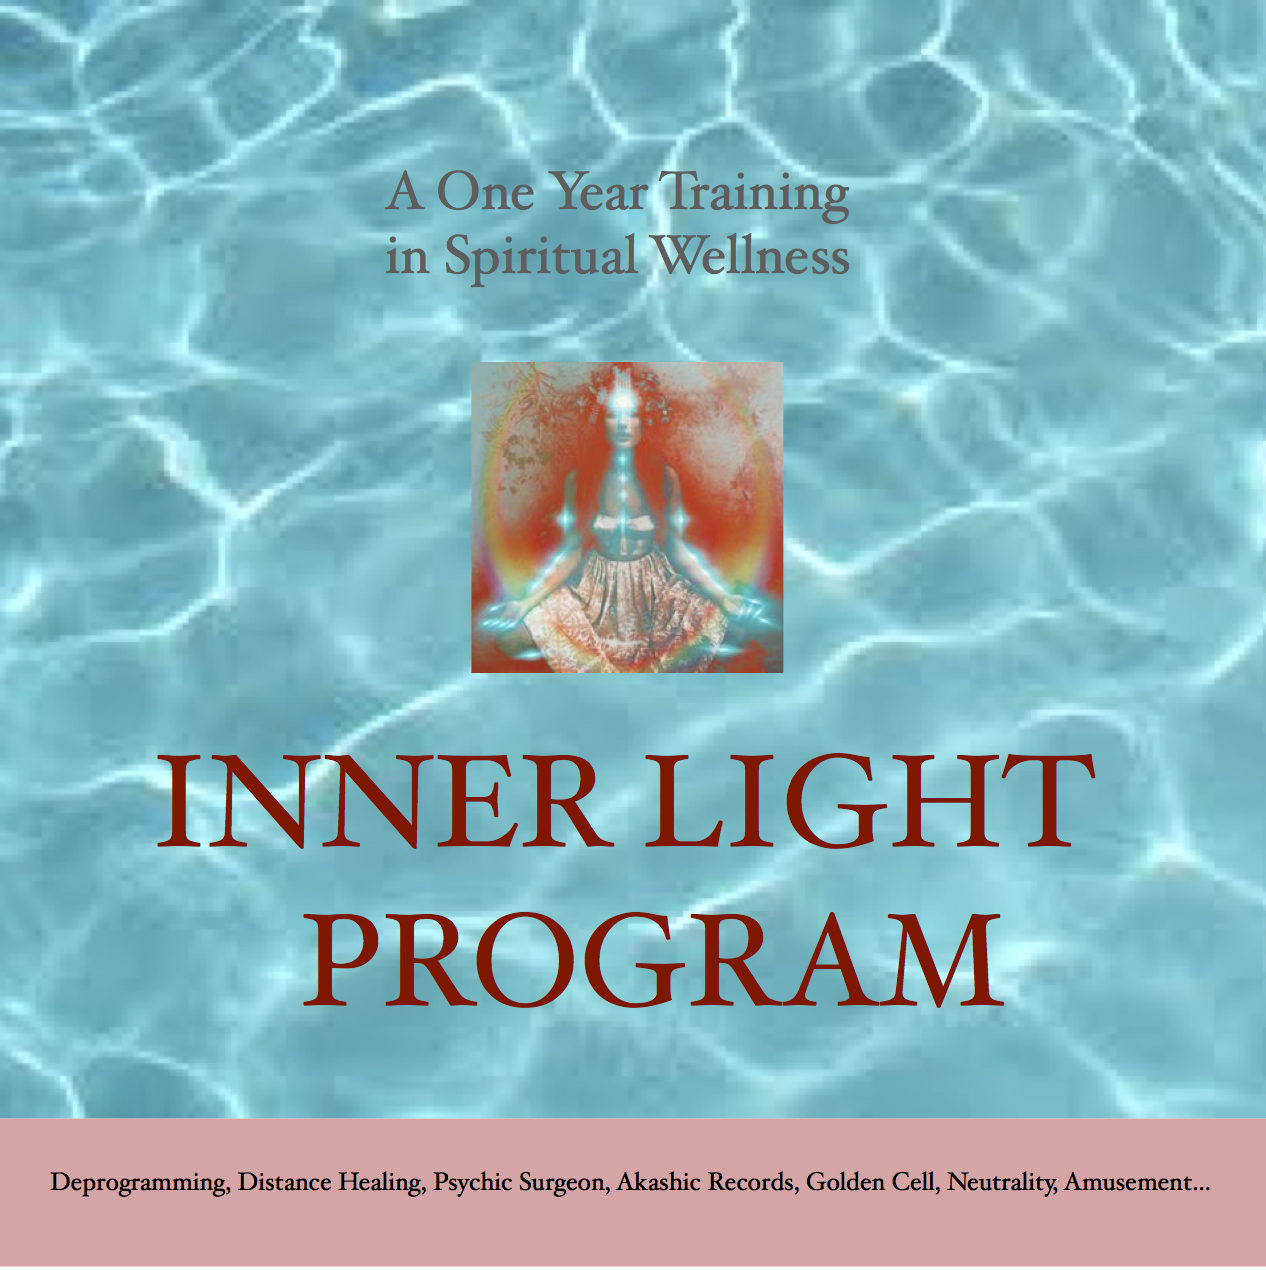 INNER LIGHT PROGRAM 6:9:16